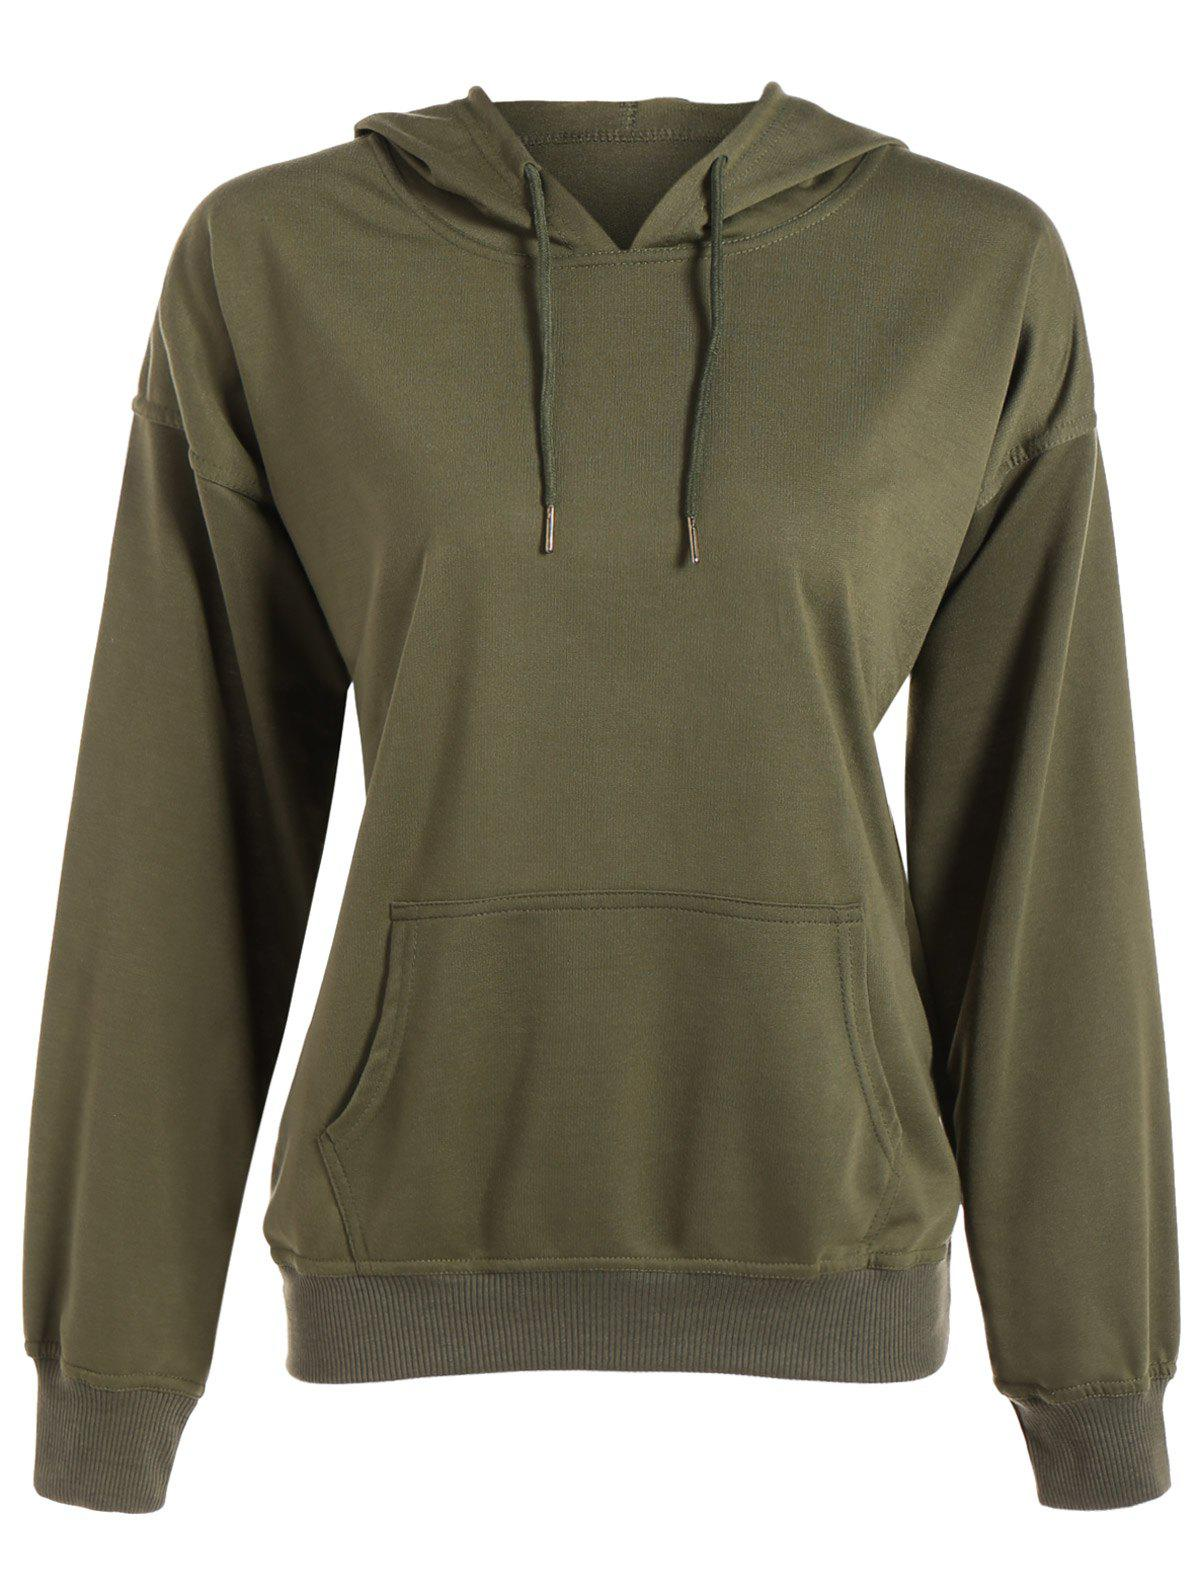 Batwing Sleeve Drawstring Oversized Hoodie - ARMY GREEN XL